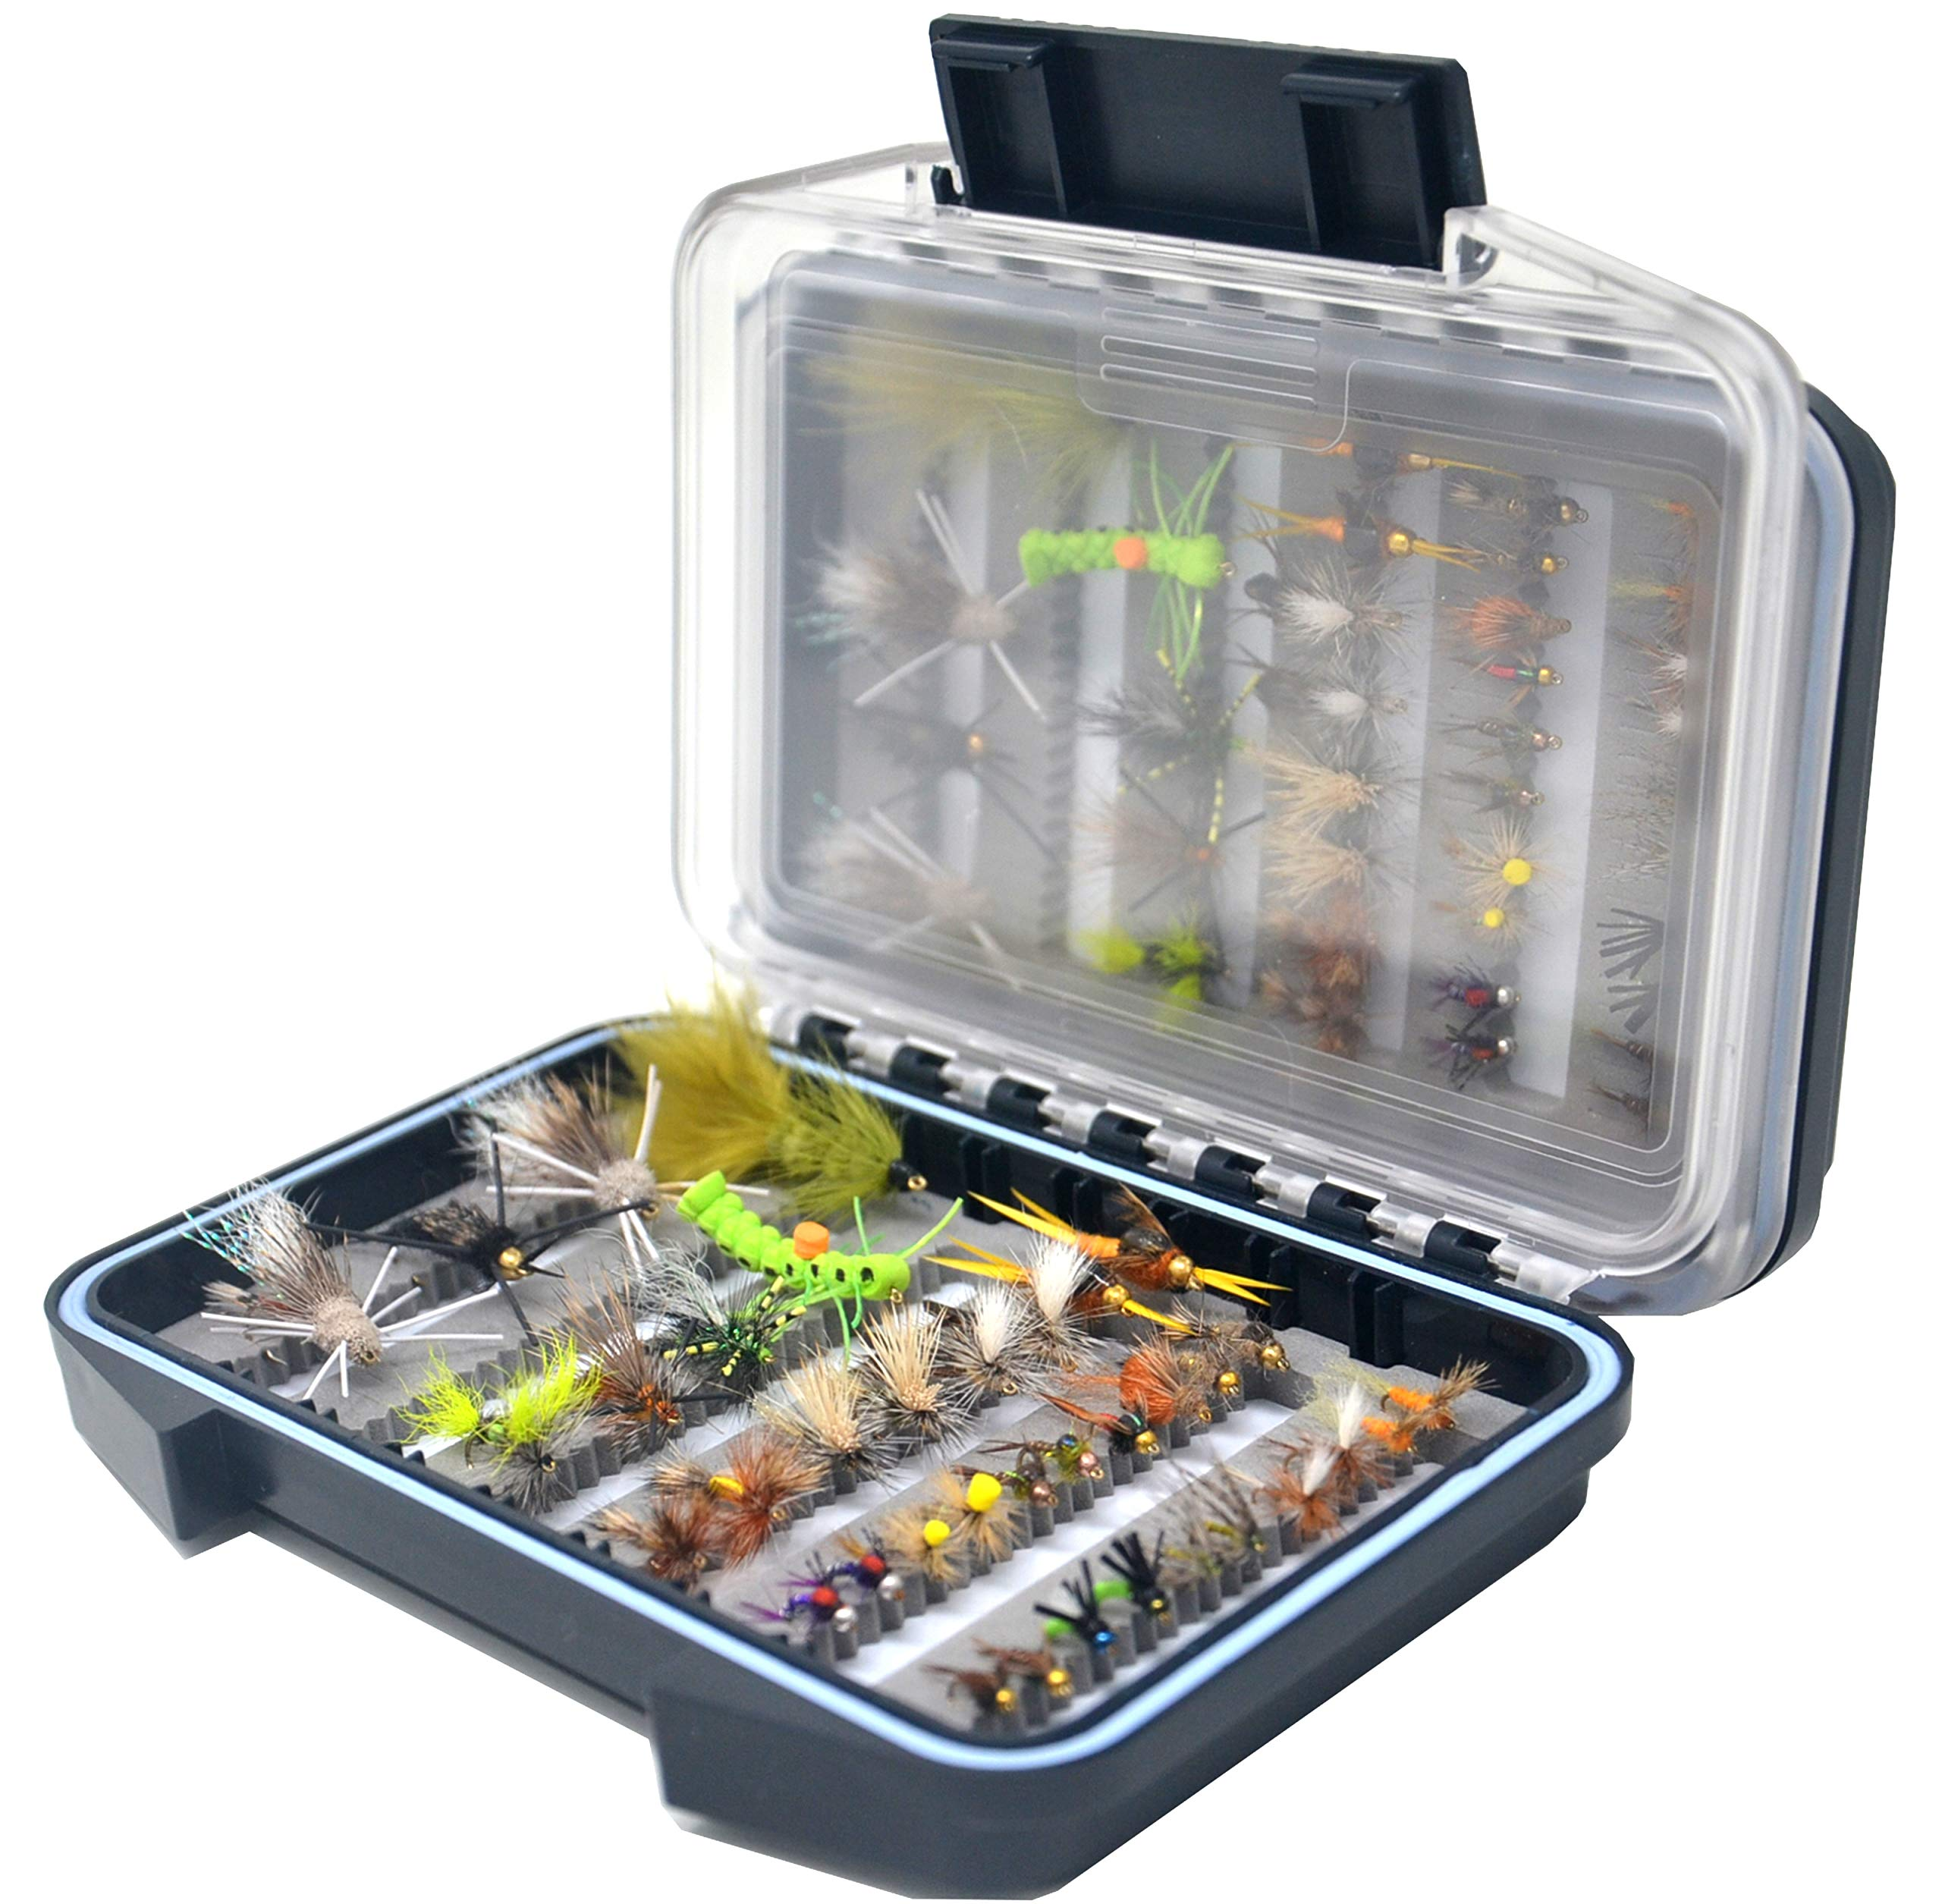 Outdoor Planet 36Pieces Pack 2 Essential Nymphs Flies/Wet Flies/Dry Flies/Streamer/Hopper Trout Fly Assortment for Fly Fishing Flies + Waterproof Fly Fishing Box by Outdoor Planet